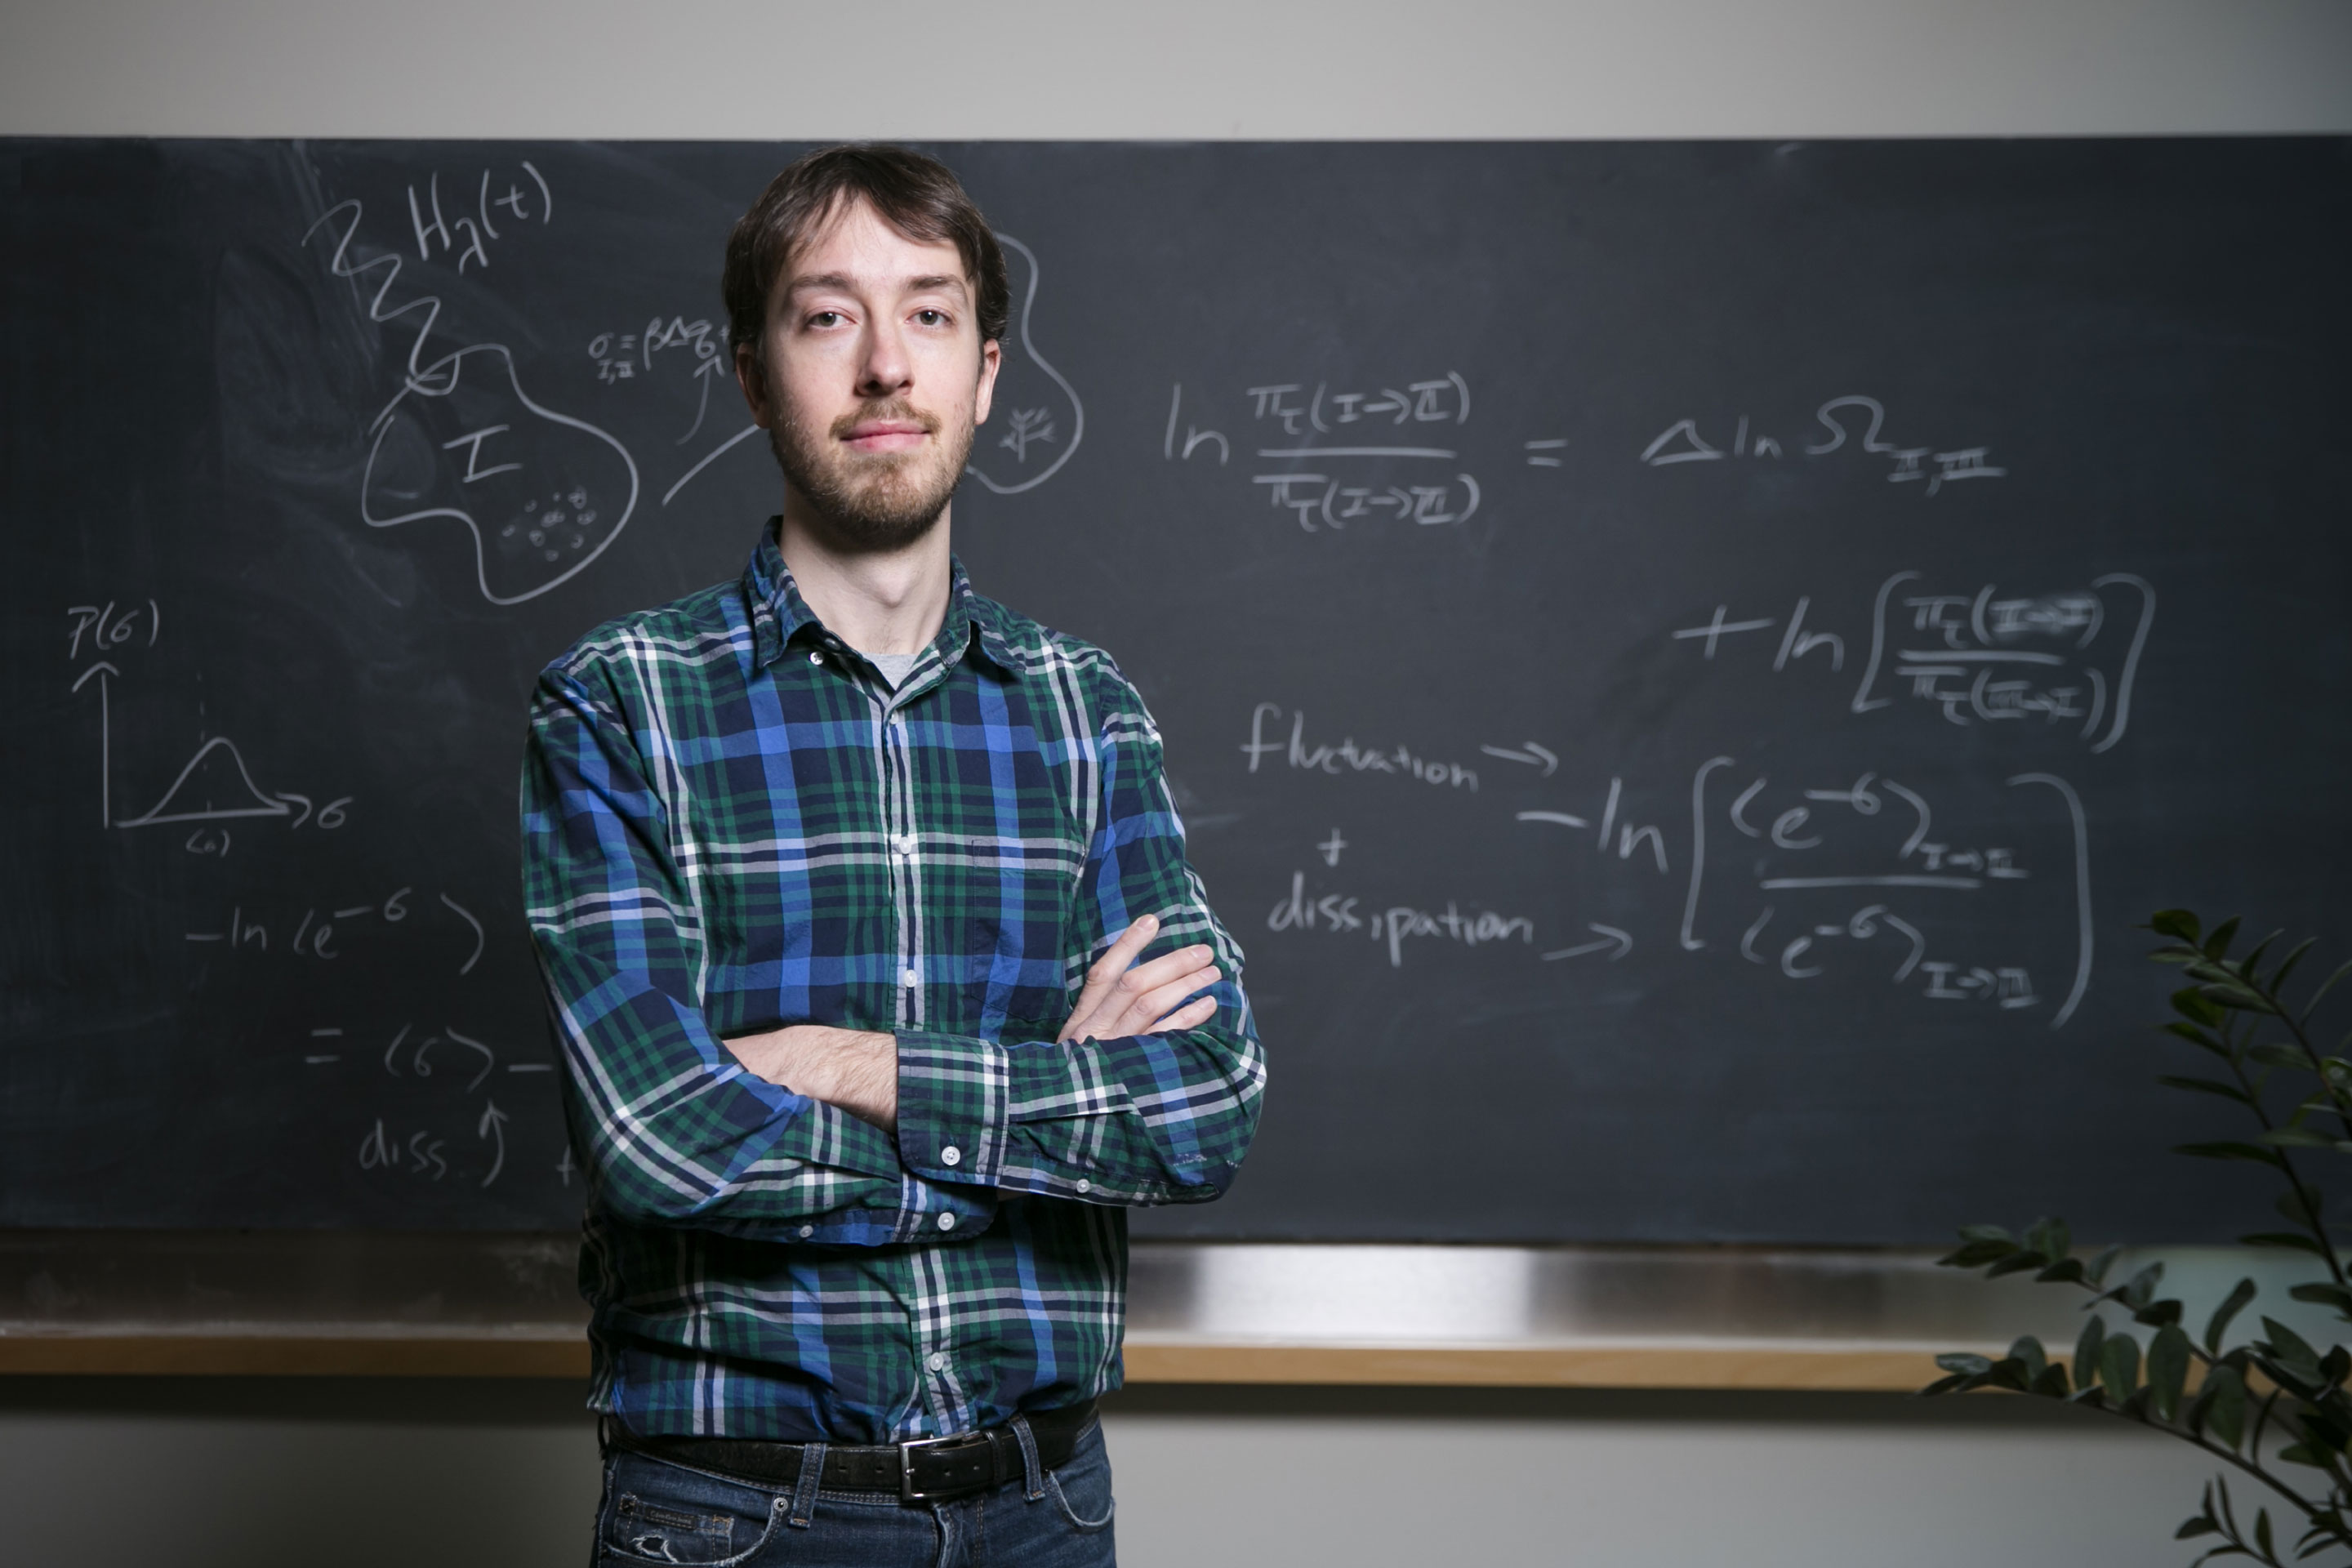 Jeremy England, a 31-year-old physicist at MIT, thinks he has found the underlying physics driving the origin and evolution of life.